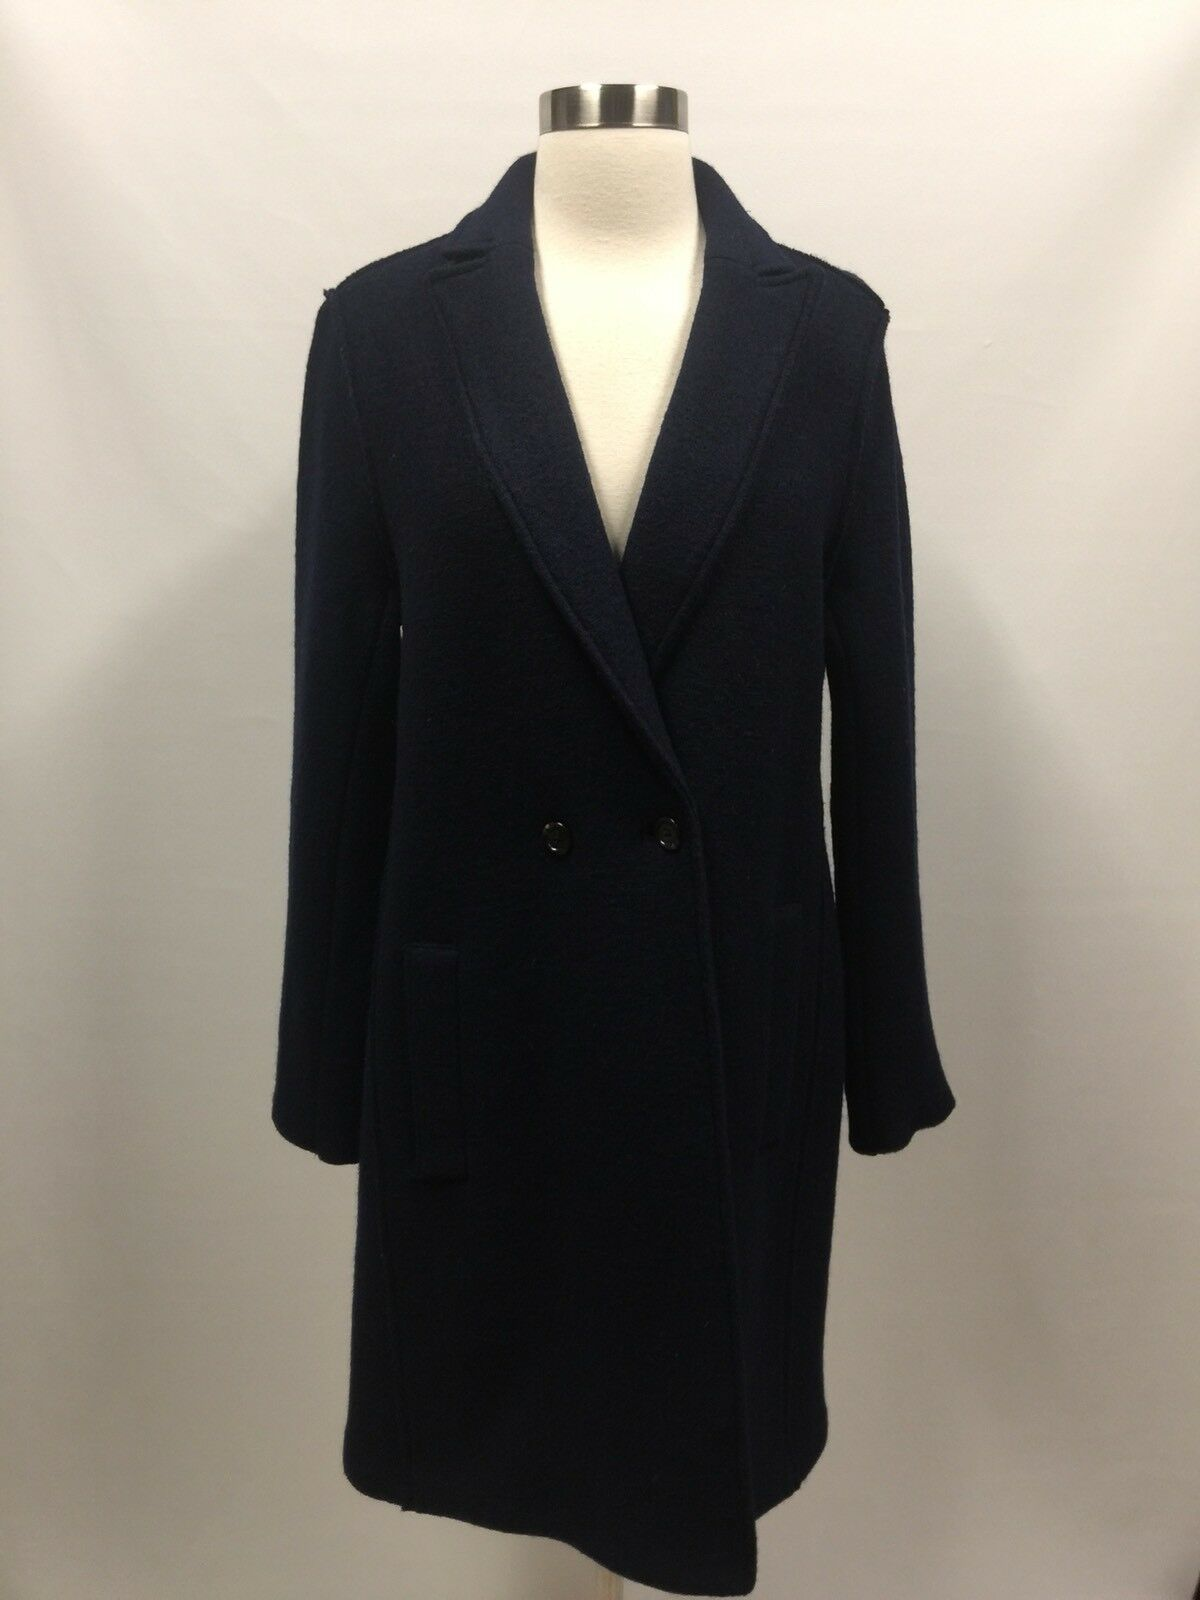 J.Crew Daphne topcoat in boiled wool Size 8 NAVY G8033  Sold out